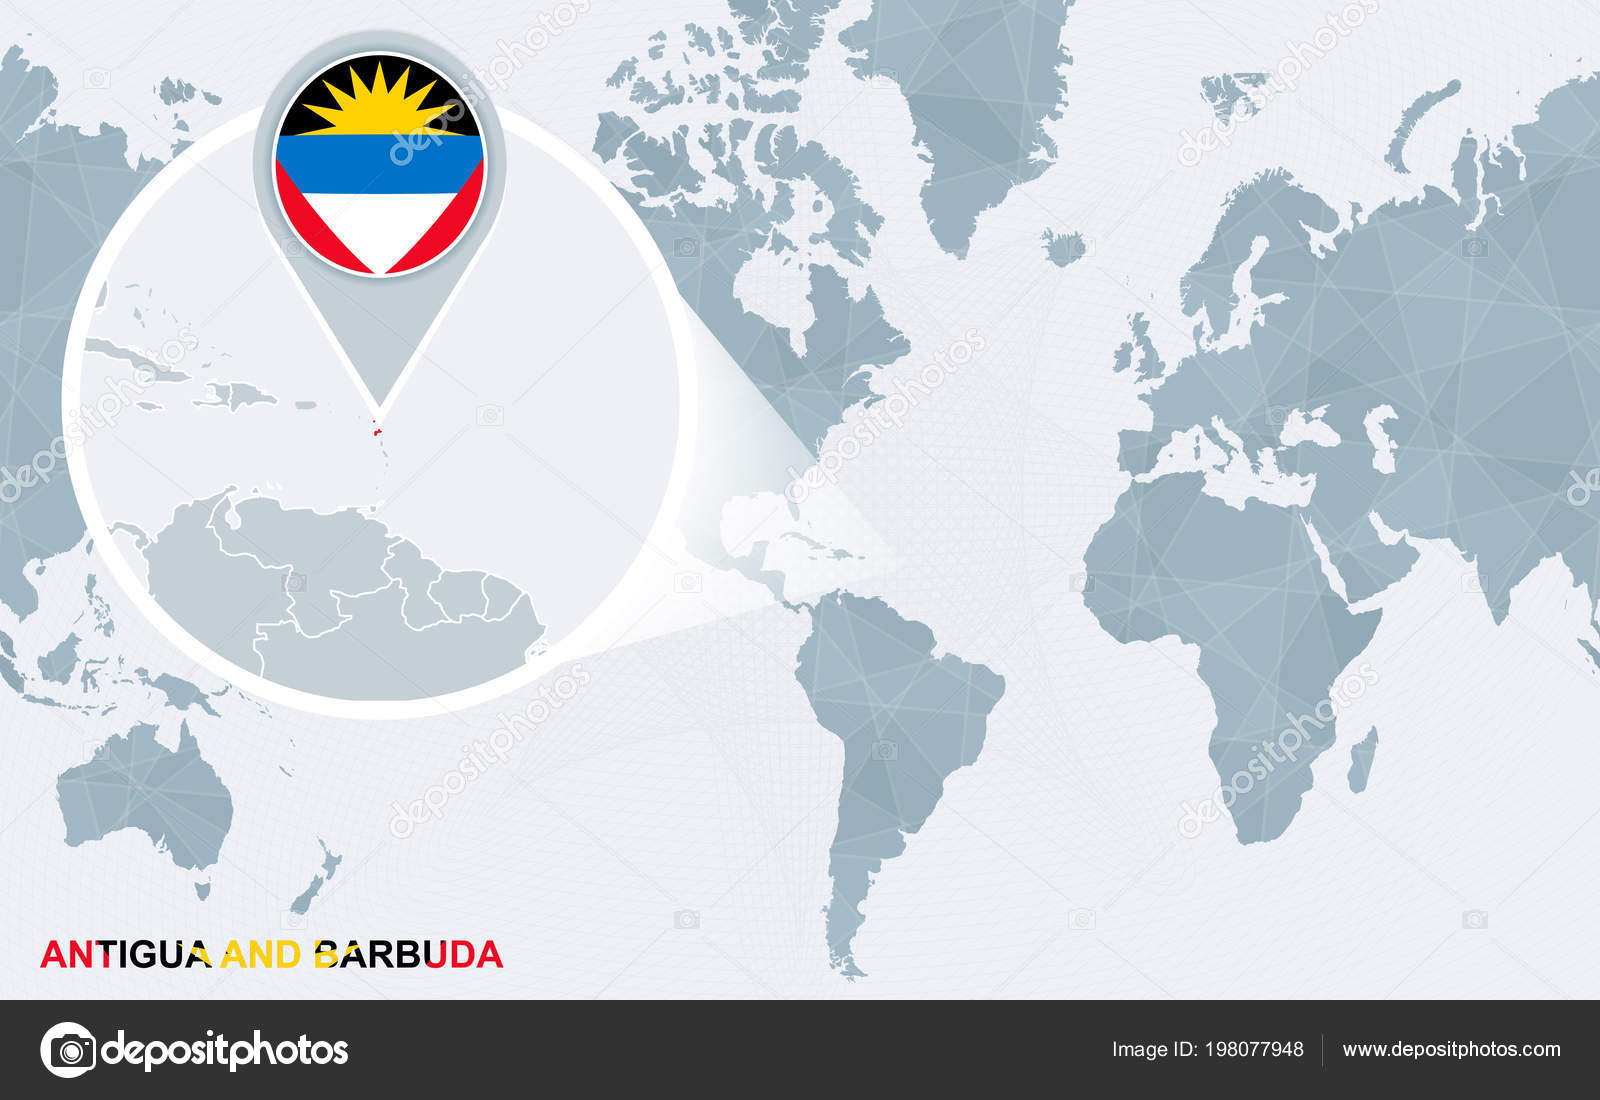 Antigua And Barbuda World Map.World Map Centered America Magnified Antigua Barbuda Blue Flag Map